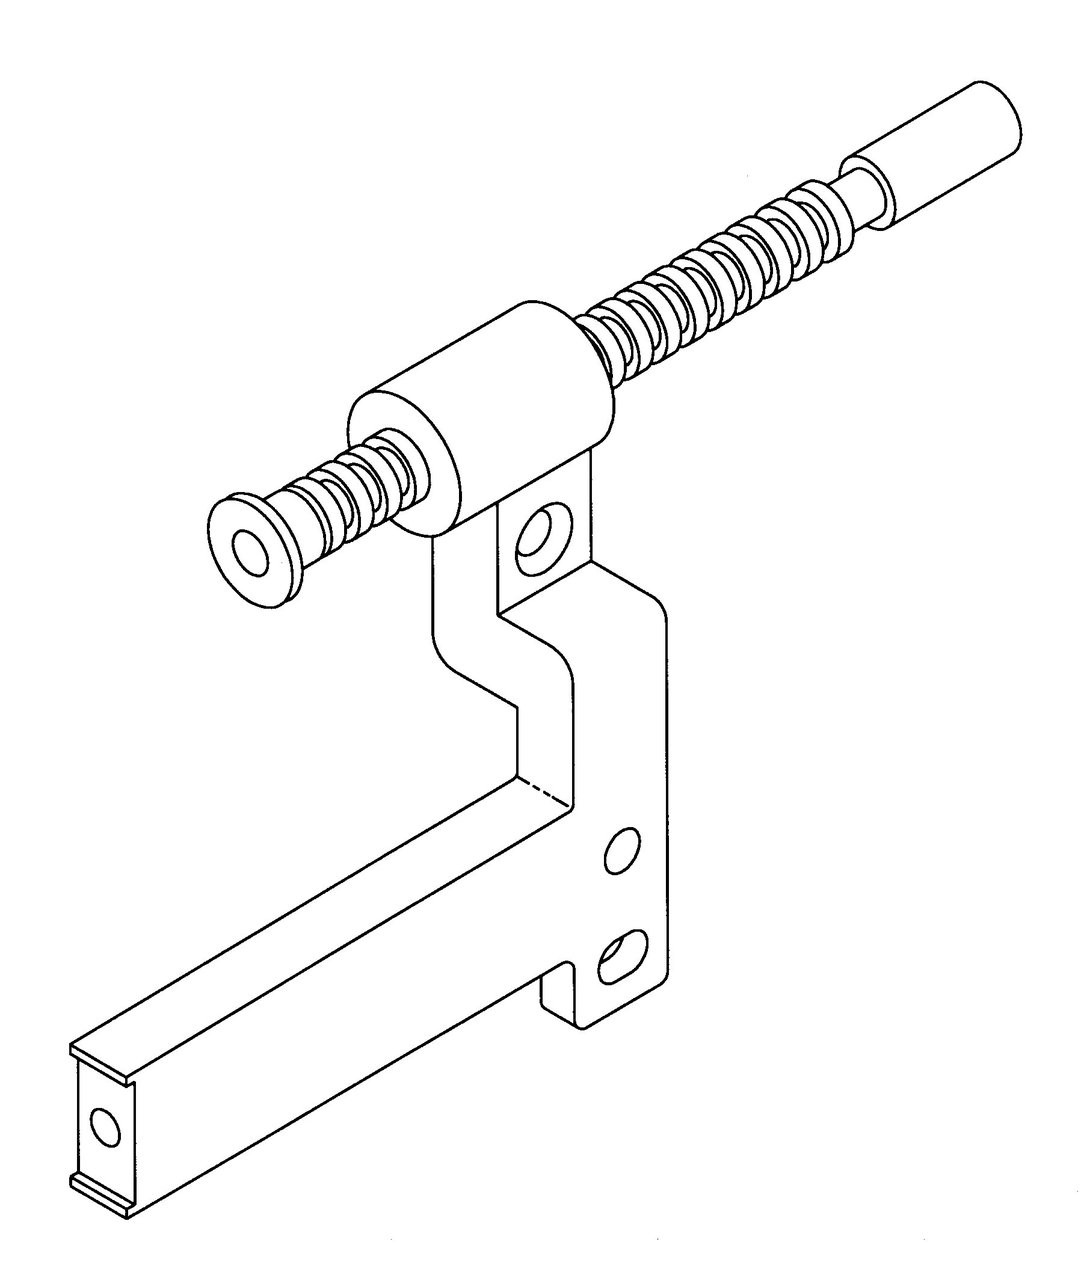 Butcher Boy B12,B14,B16 & SA16 - Gauge Spindle & Arm Assembly - BB056-624